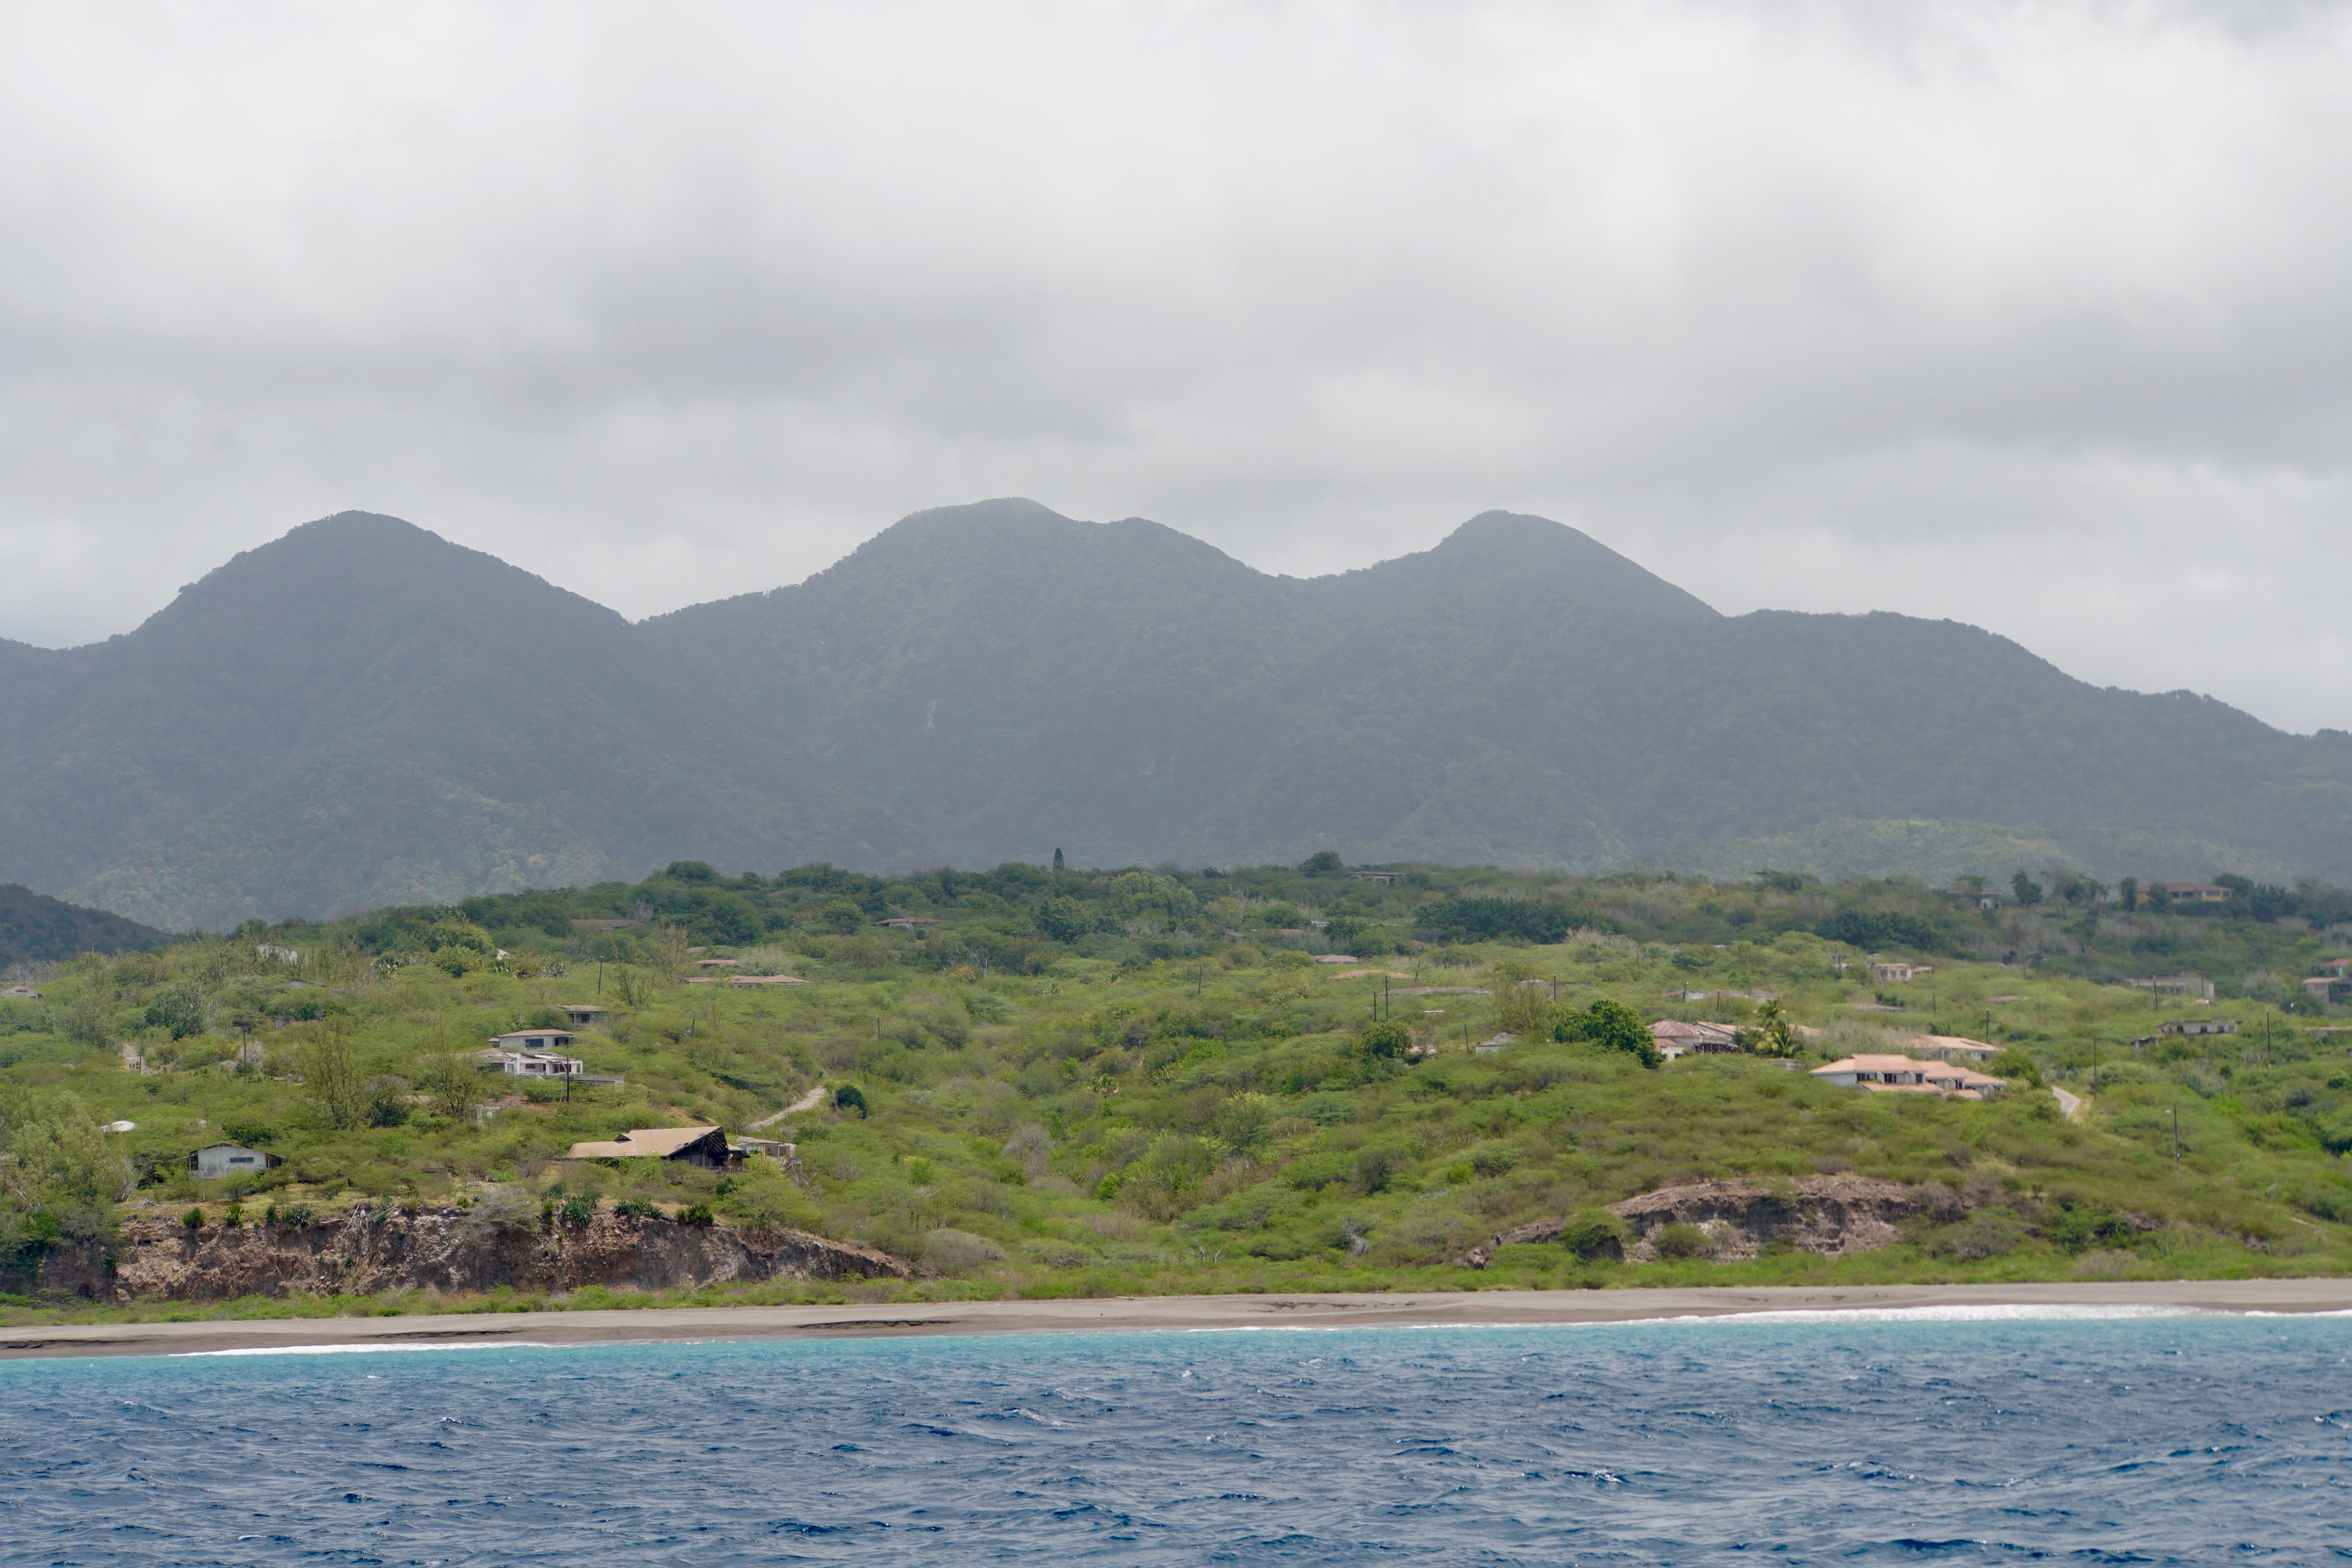 18. starting to see some of the homes buried in ash from the 1995 eruption of the Soufriere Hills Volcano.